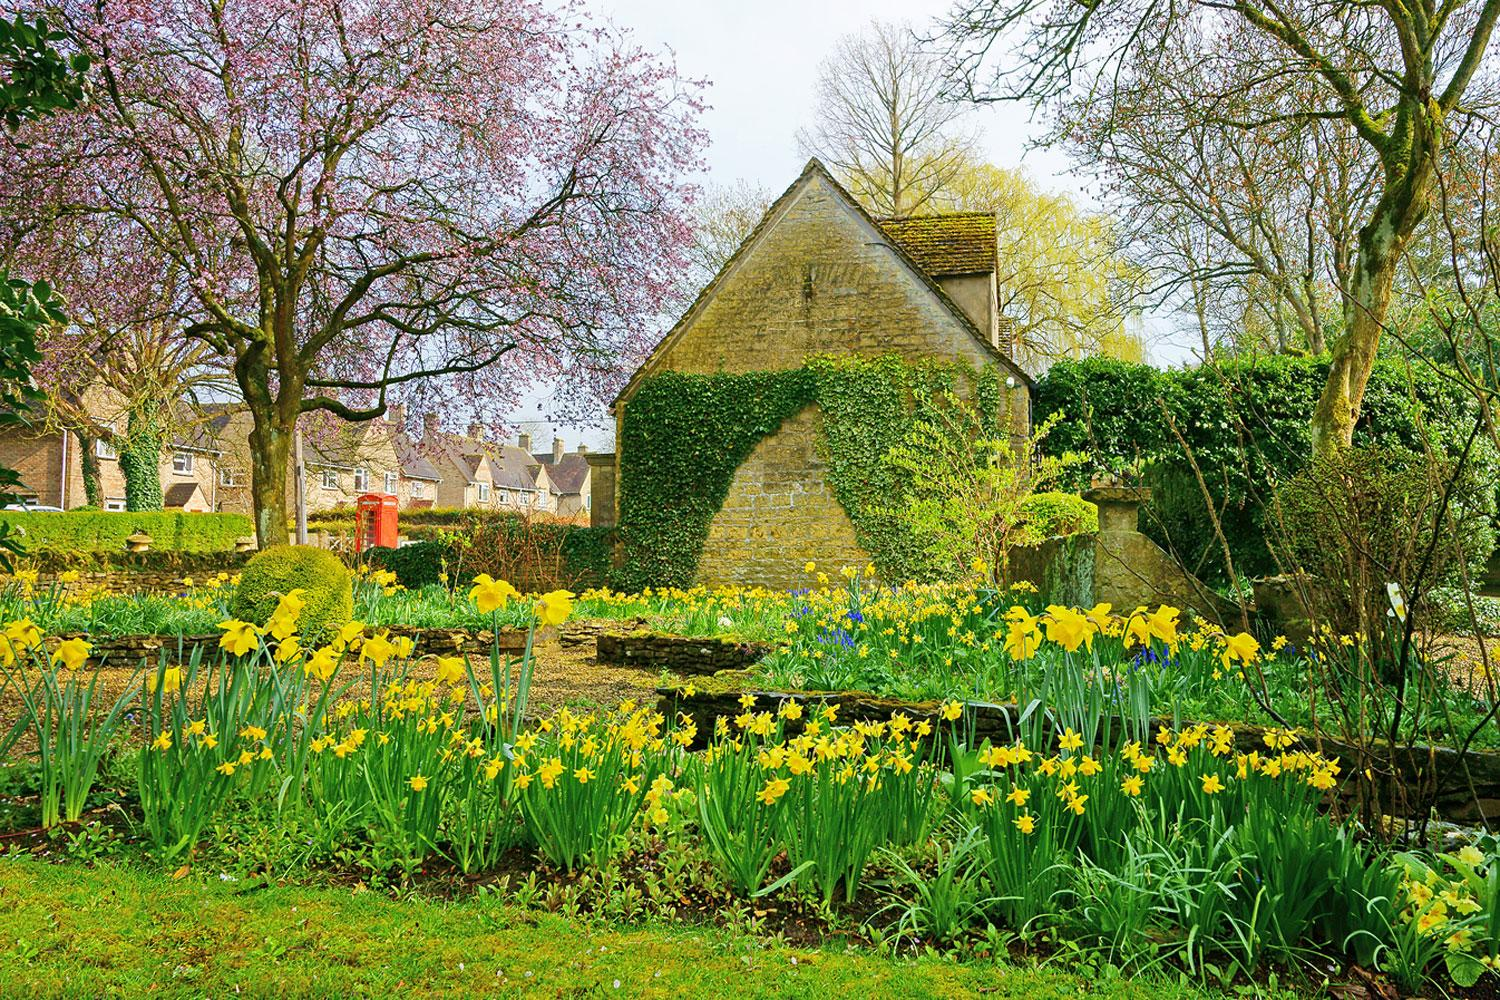 Cotswolds daffodills in the springtime